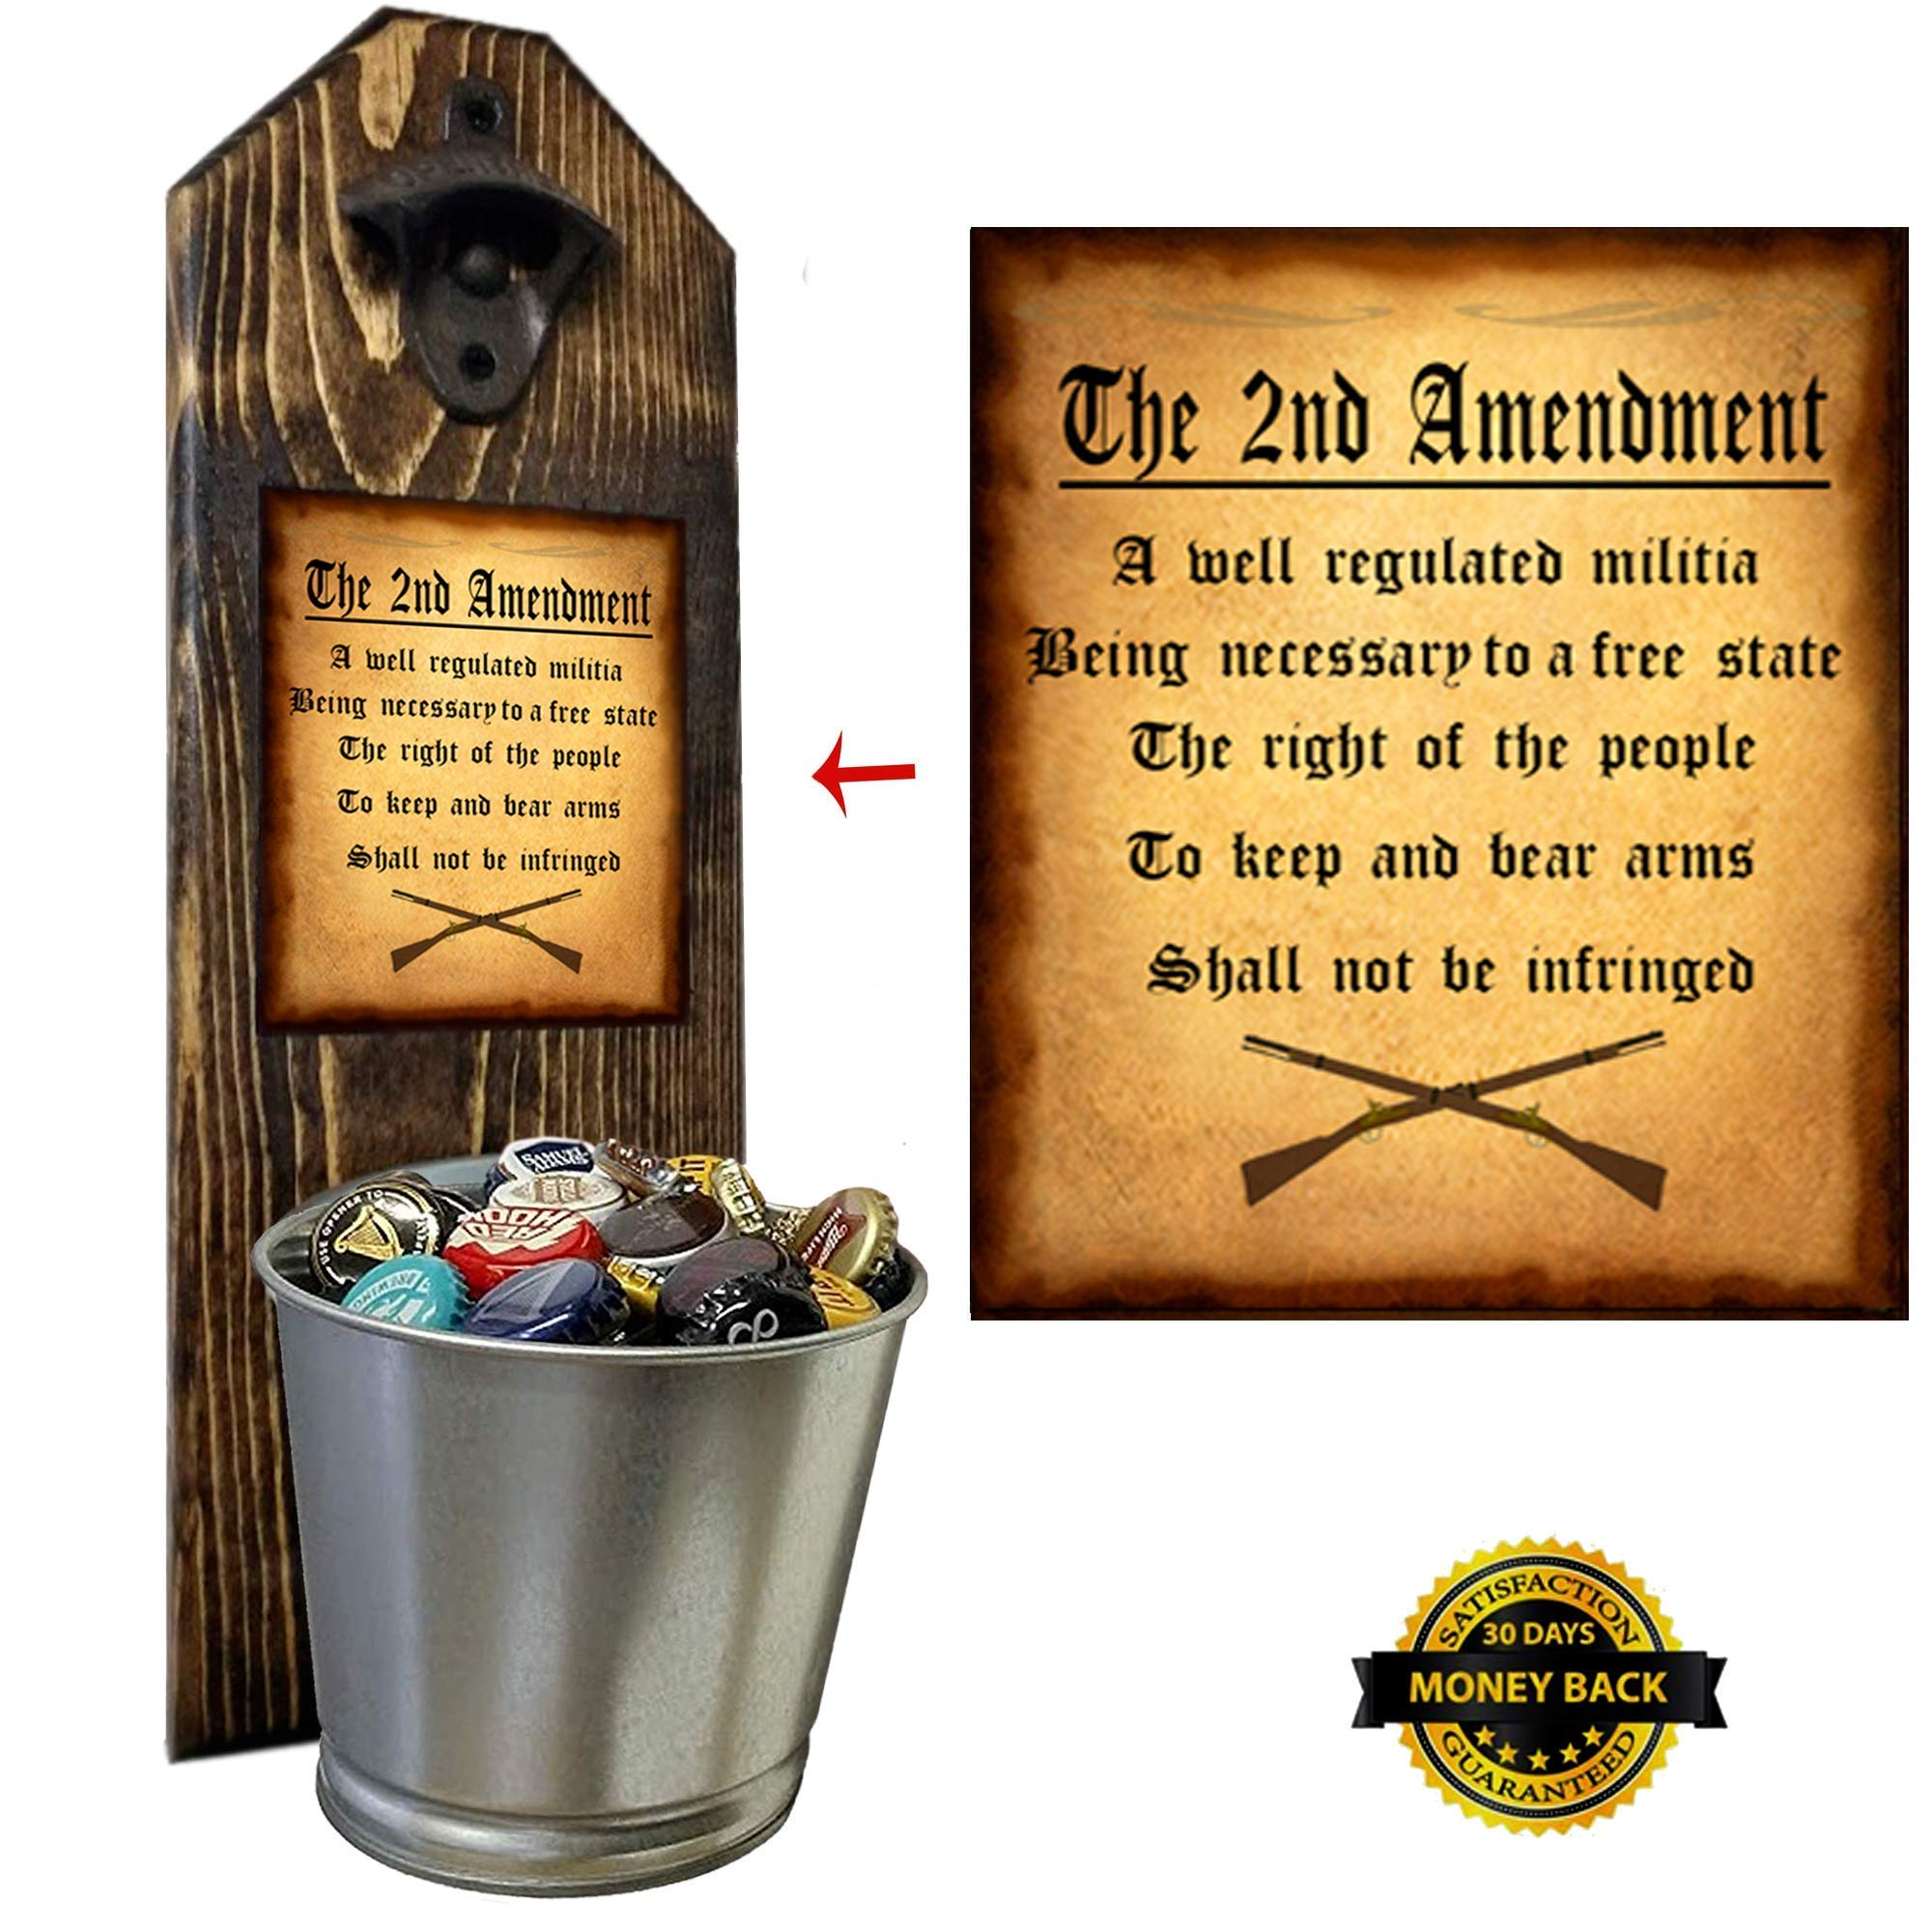 ''2nd Amendment'' Bottle Opener and Cap Catcher - Wall Mounted - Handcrafted by a Vet - Made of 3/4 thick Solid Pine, Rustic Cast Iron Opener and Galvanized Bucket - Great Dad Gift! by CherryPic Junction (Image #1)